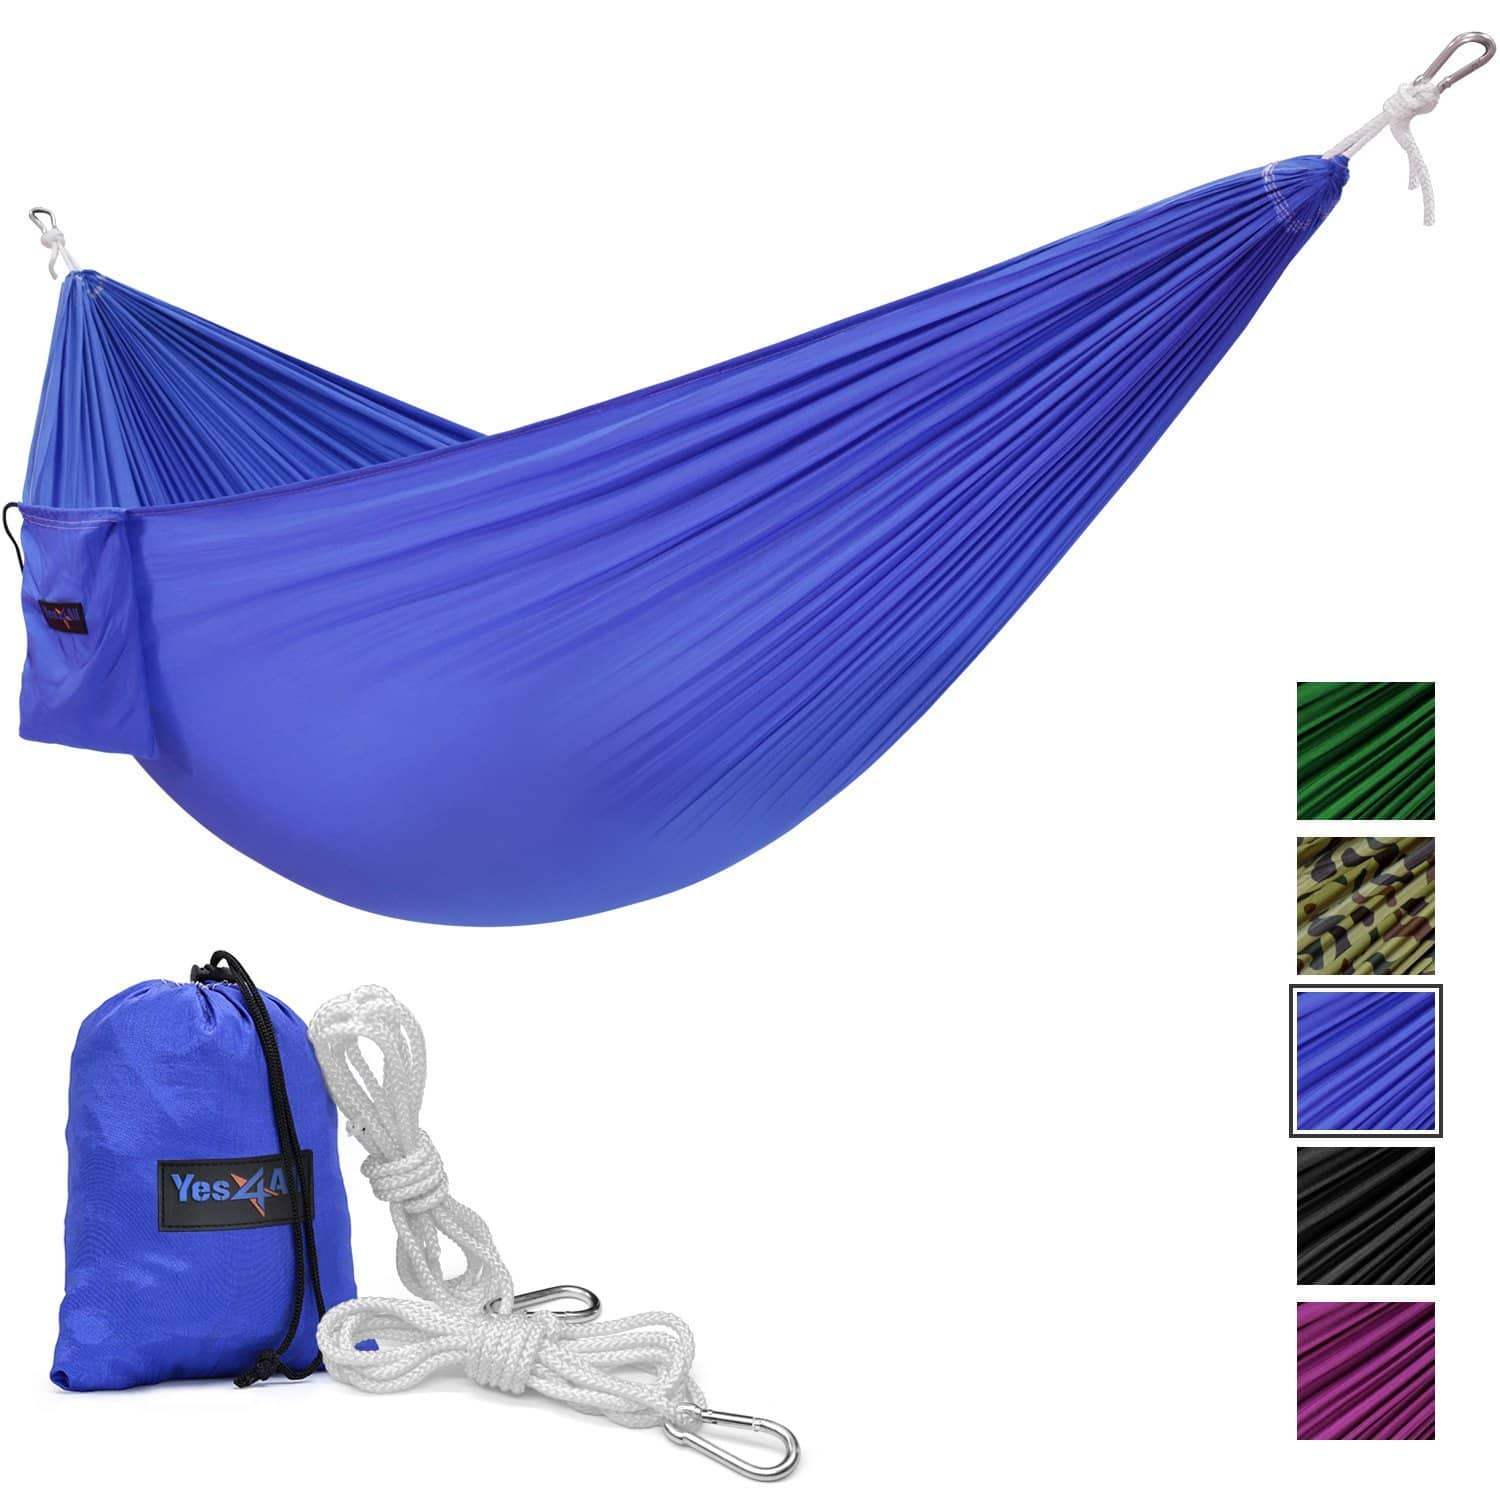 Lightweight Nylon Camping Hammock with Carry Bag, Blue - $7.99/Prime